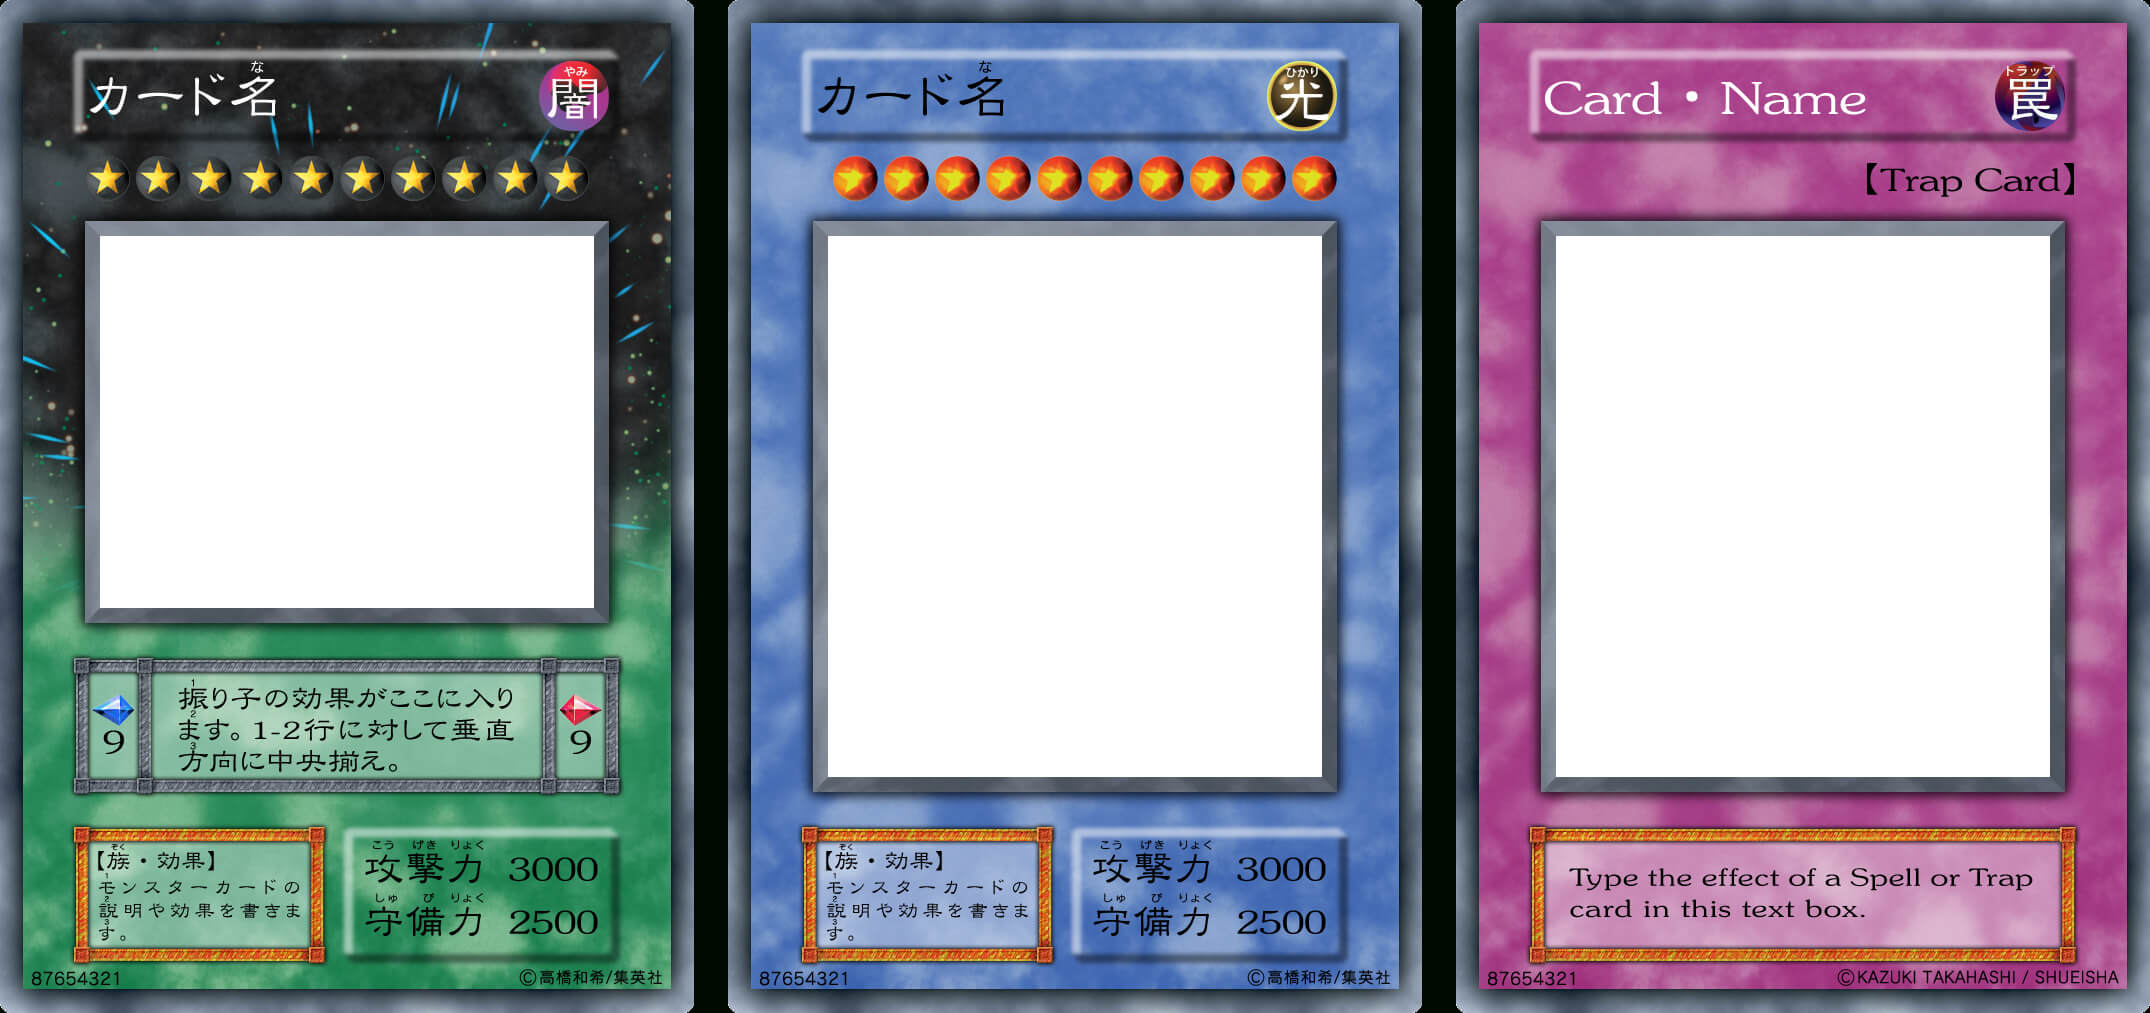 Ygo Series 1 Master Psd (Japanese)Icycatelf On Deviantart Pertaining To Yugioh Card Template